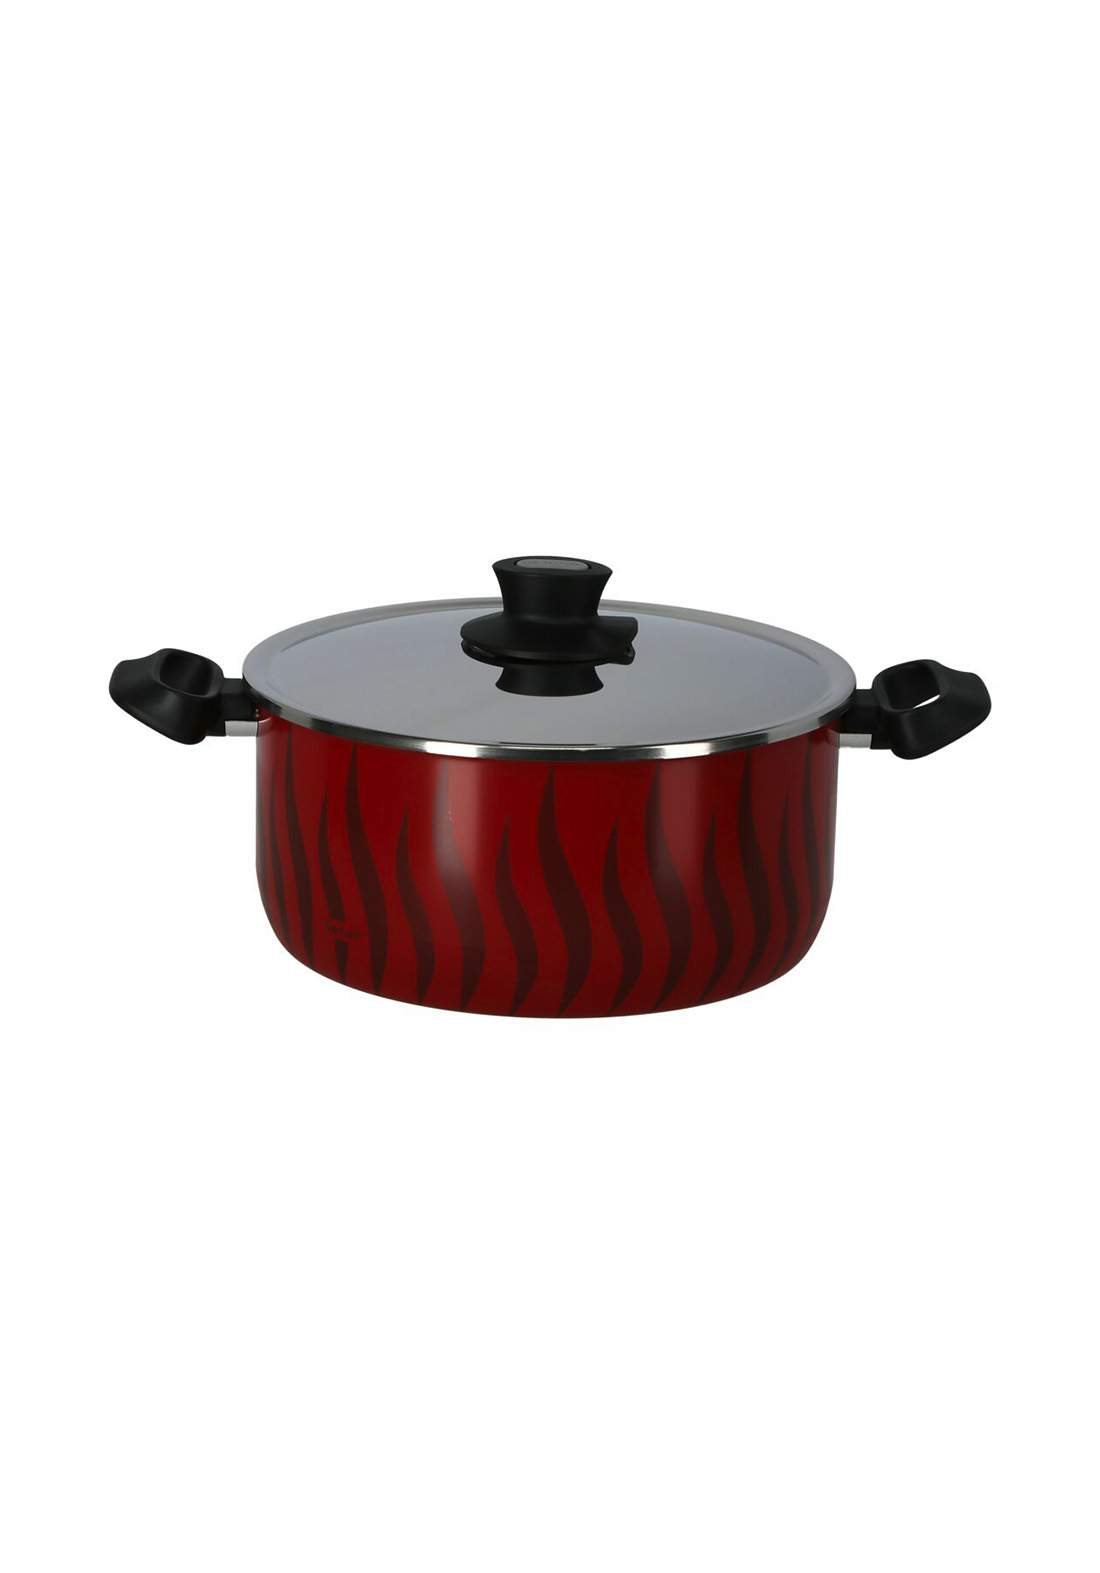 Tefal C3045383 P&P Alu Ns Ptfe New G6 Tempo Flame - Dutch Oven 28cm + SS قدر